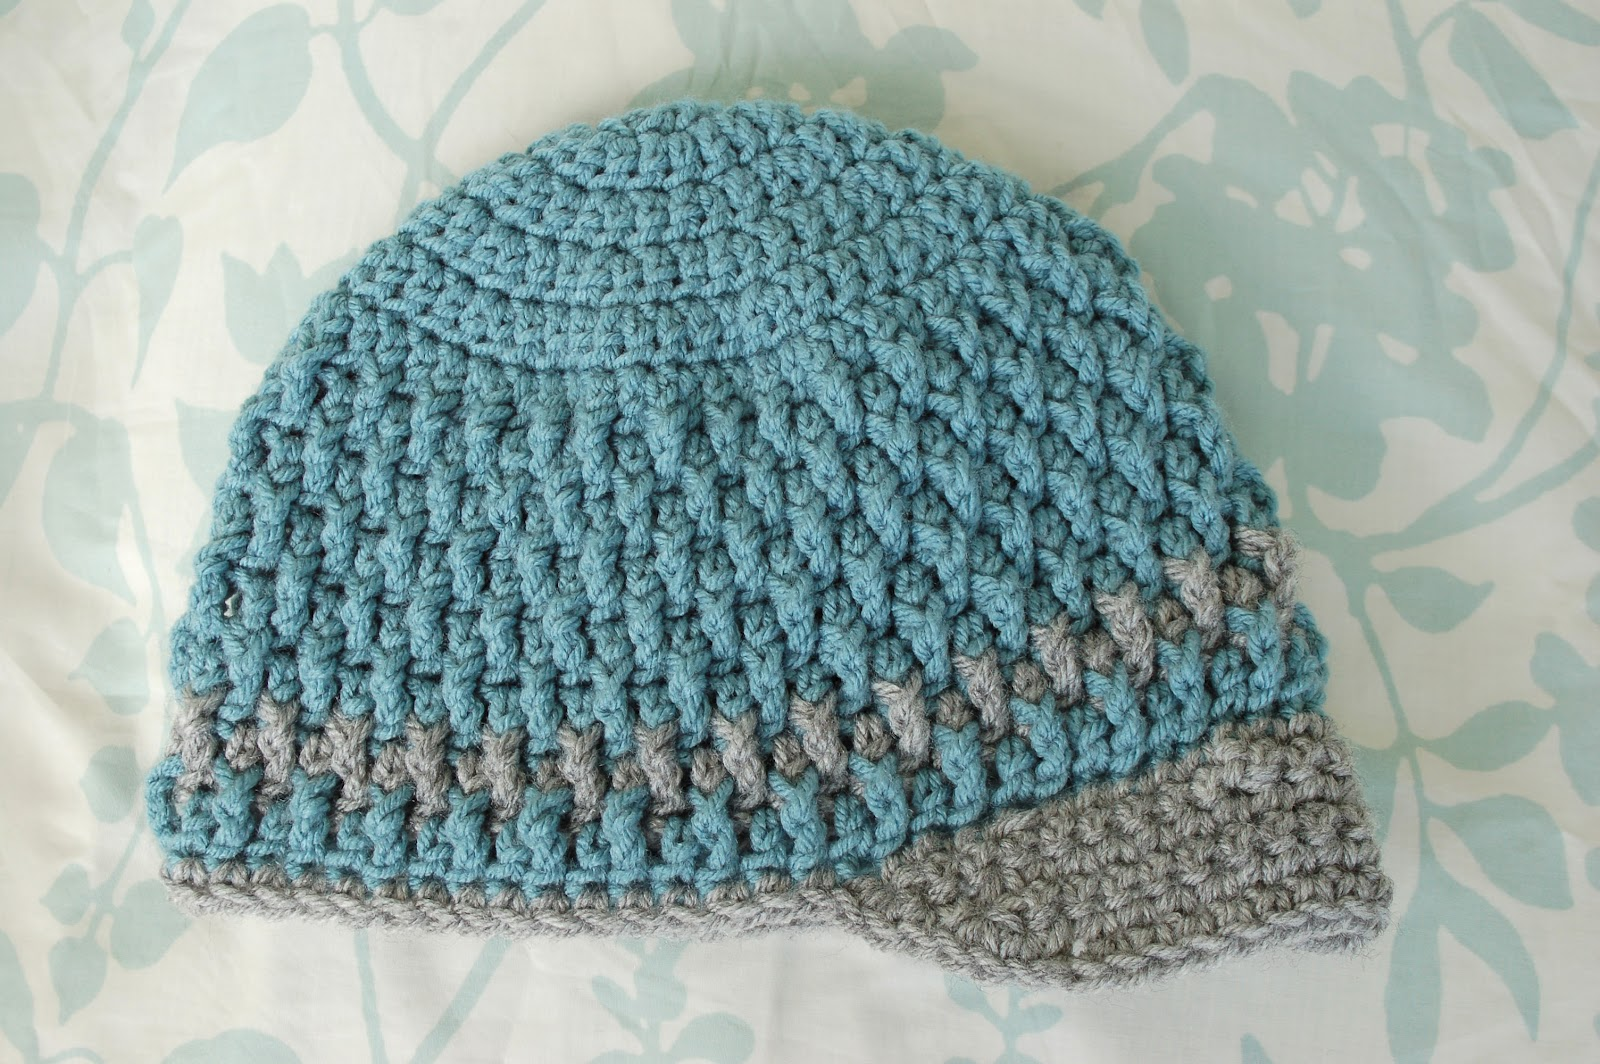 Free Crochet Pattern For Infant Hat : Alli Crafts: Free Pattern: Deeply Textured Hat - Toddler